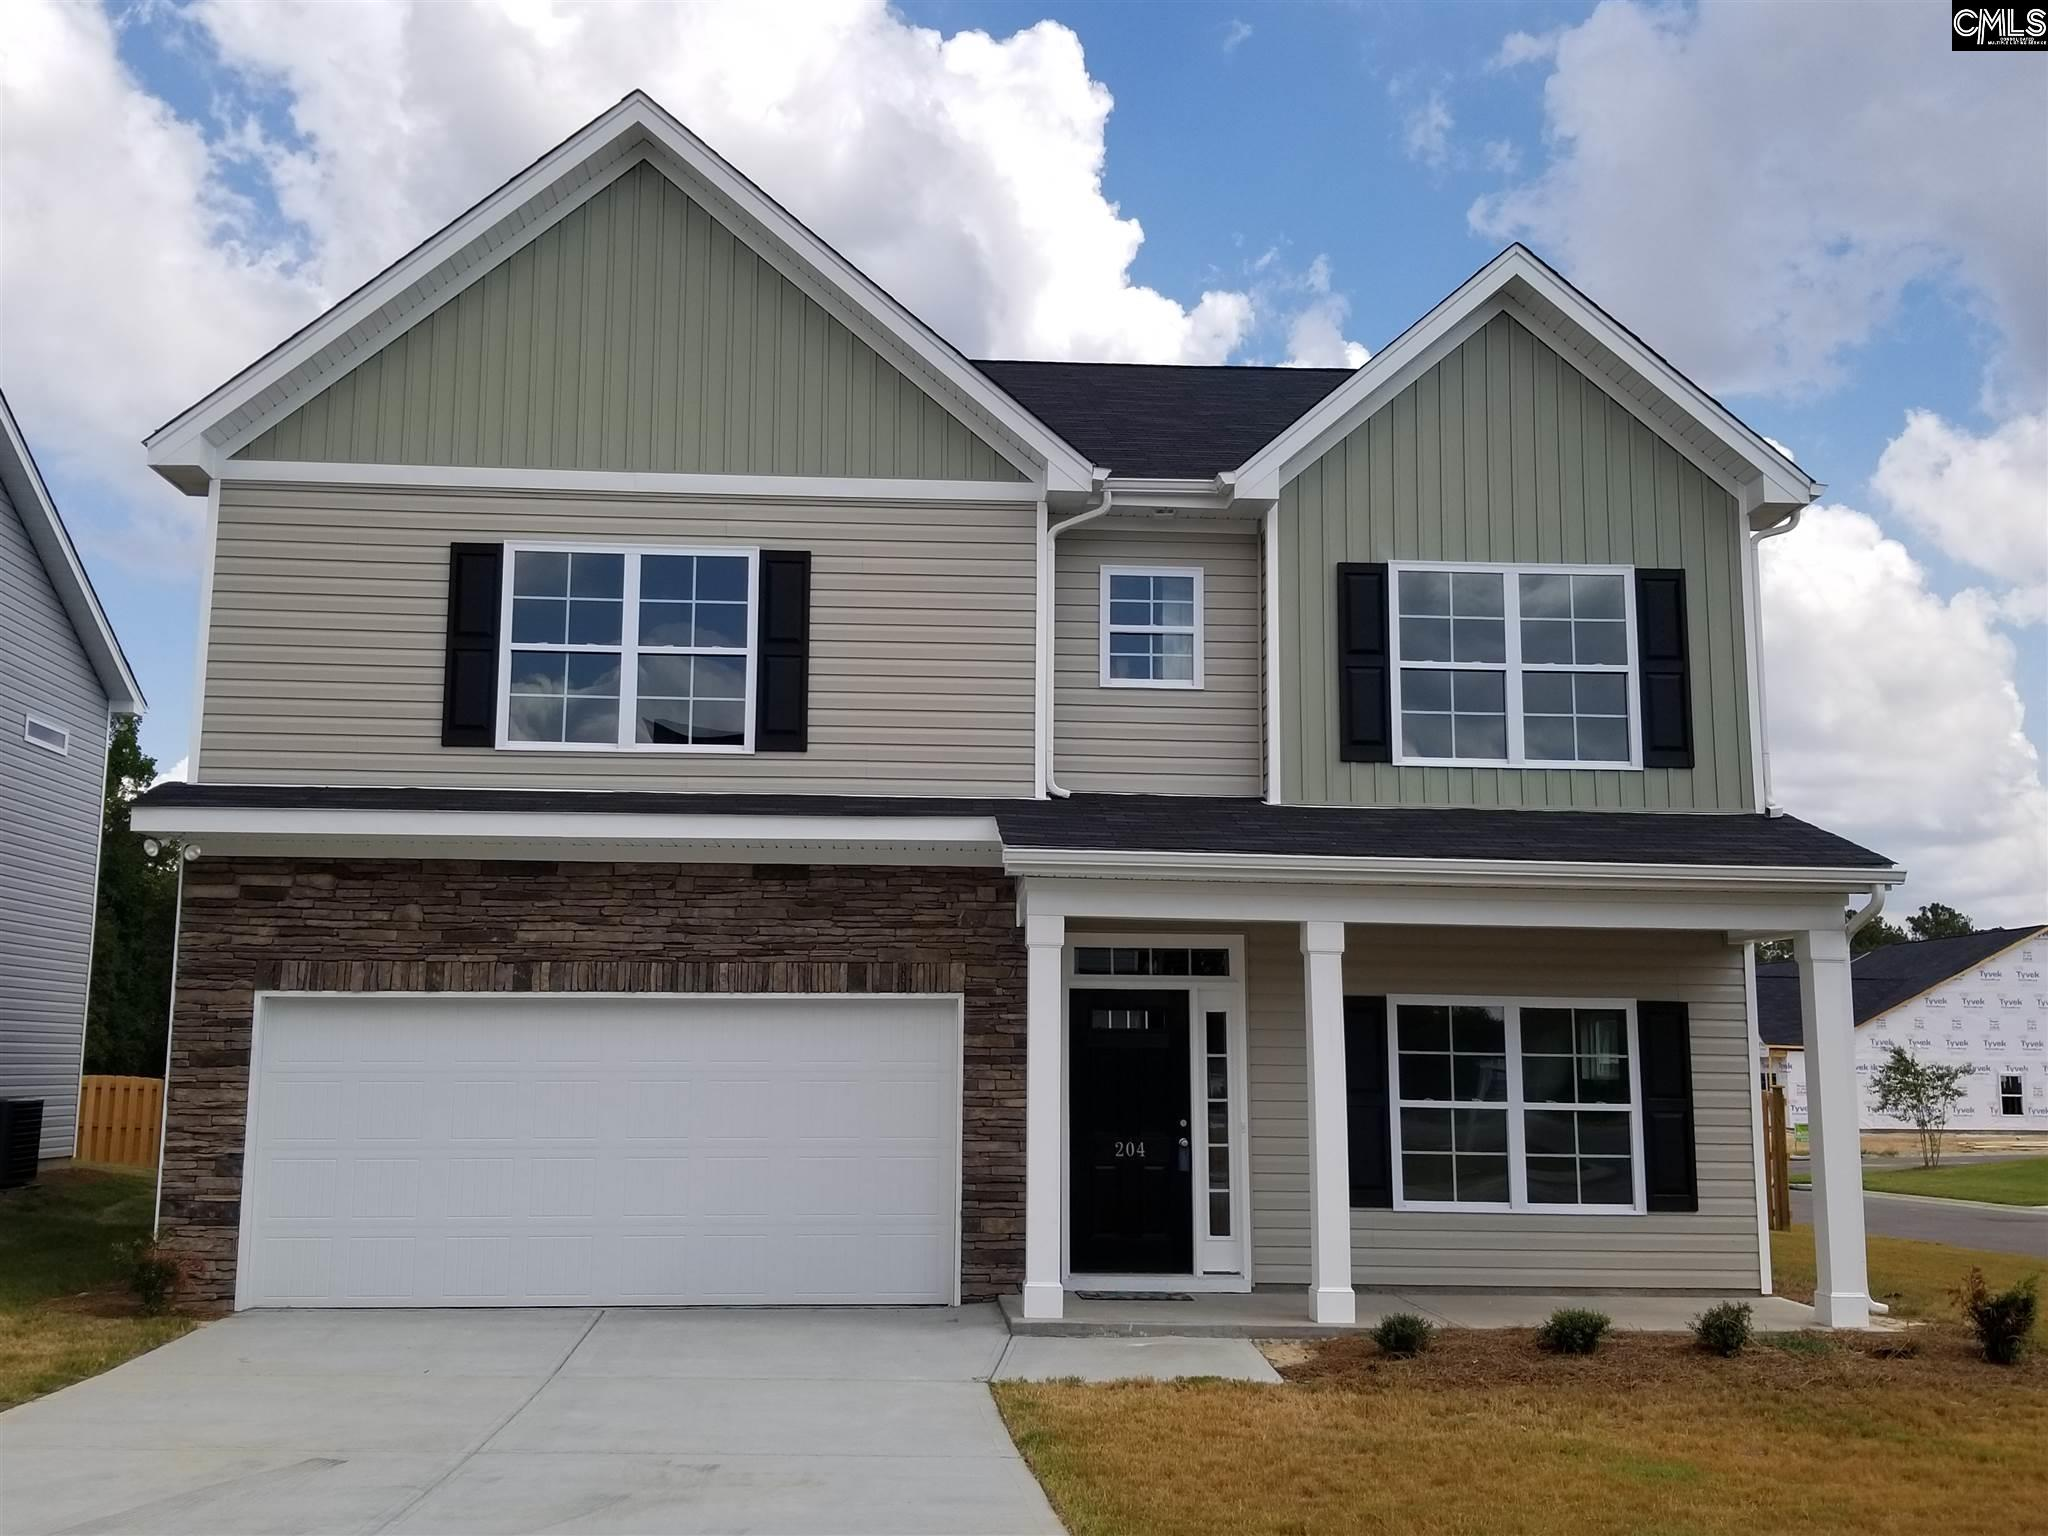 204 Shell Mound #43 West Columbia, SC 29170